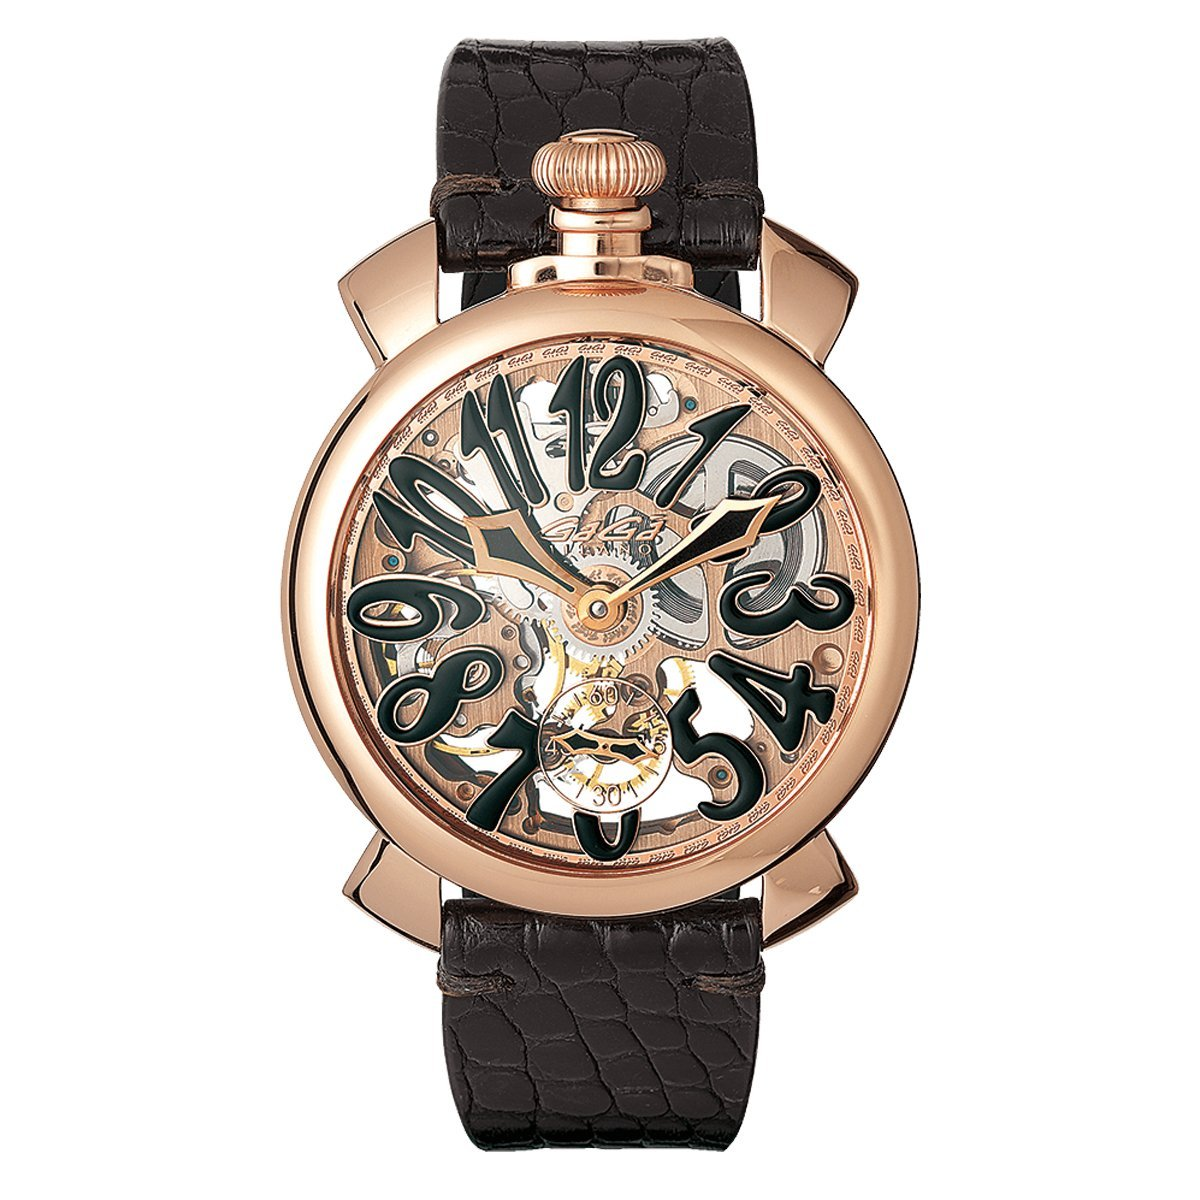 GaGà Milano Skeleton 48MM Rose Gold Black - Watches & Crystals